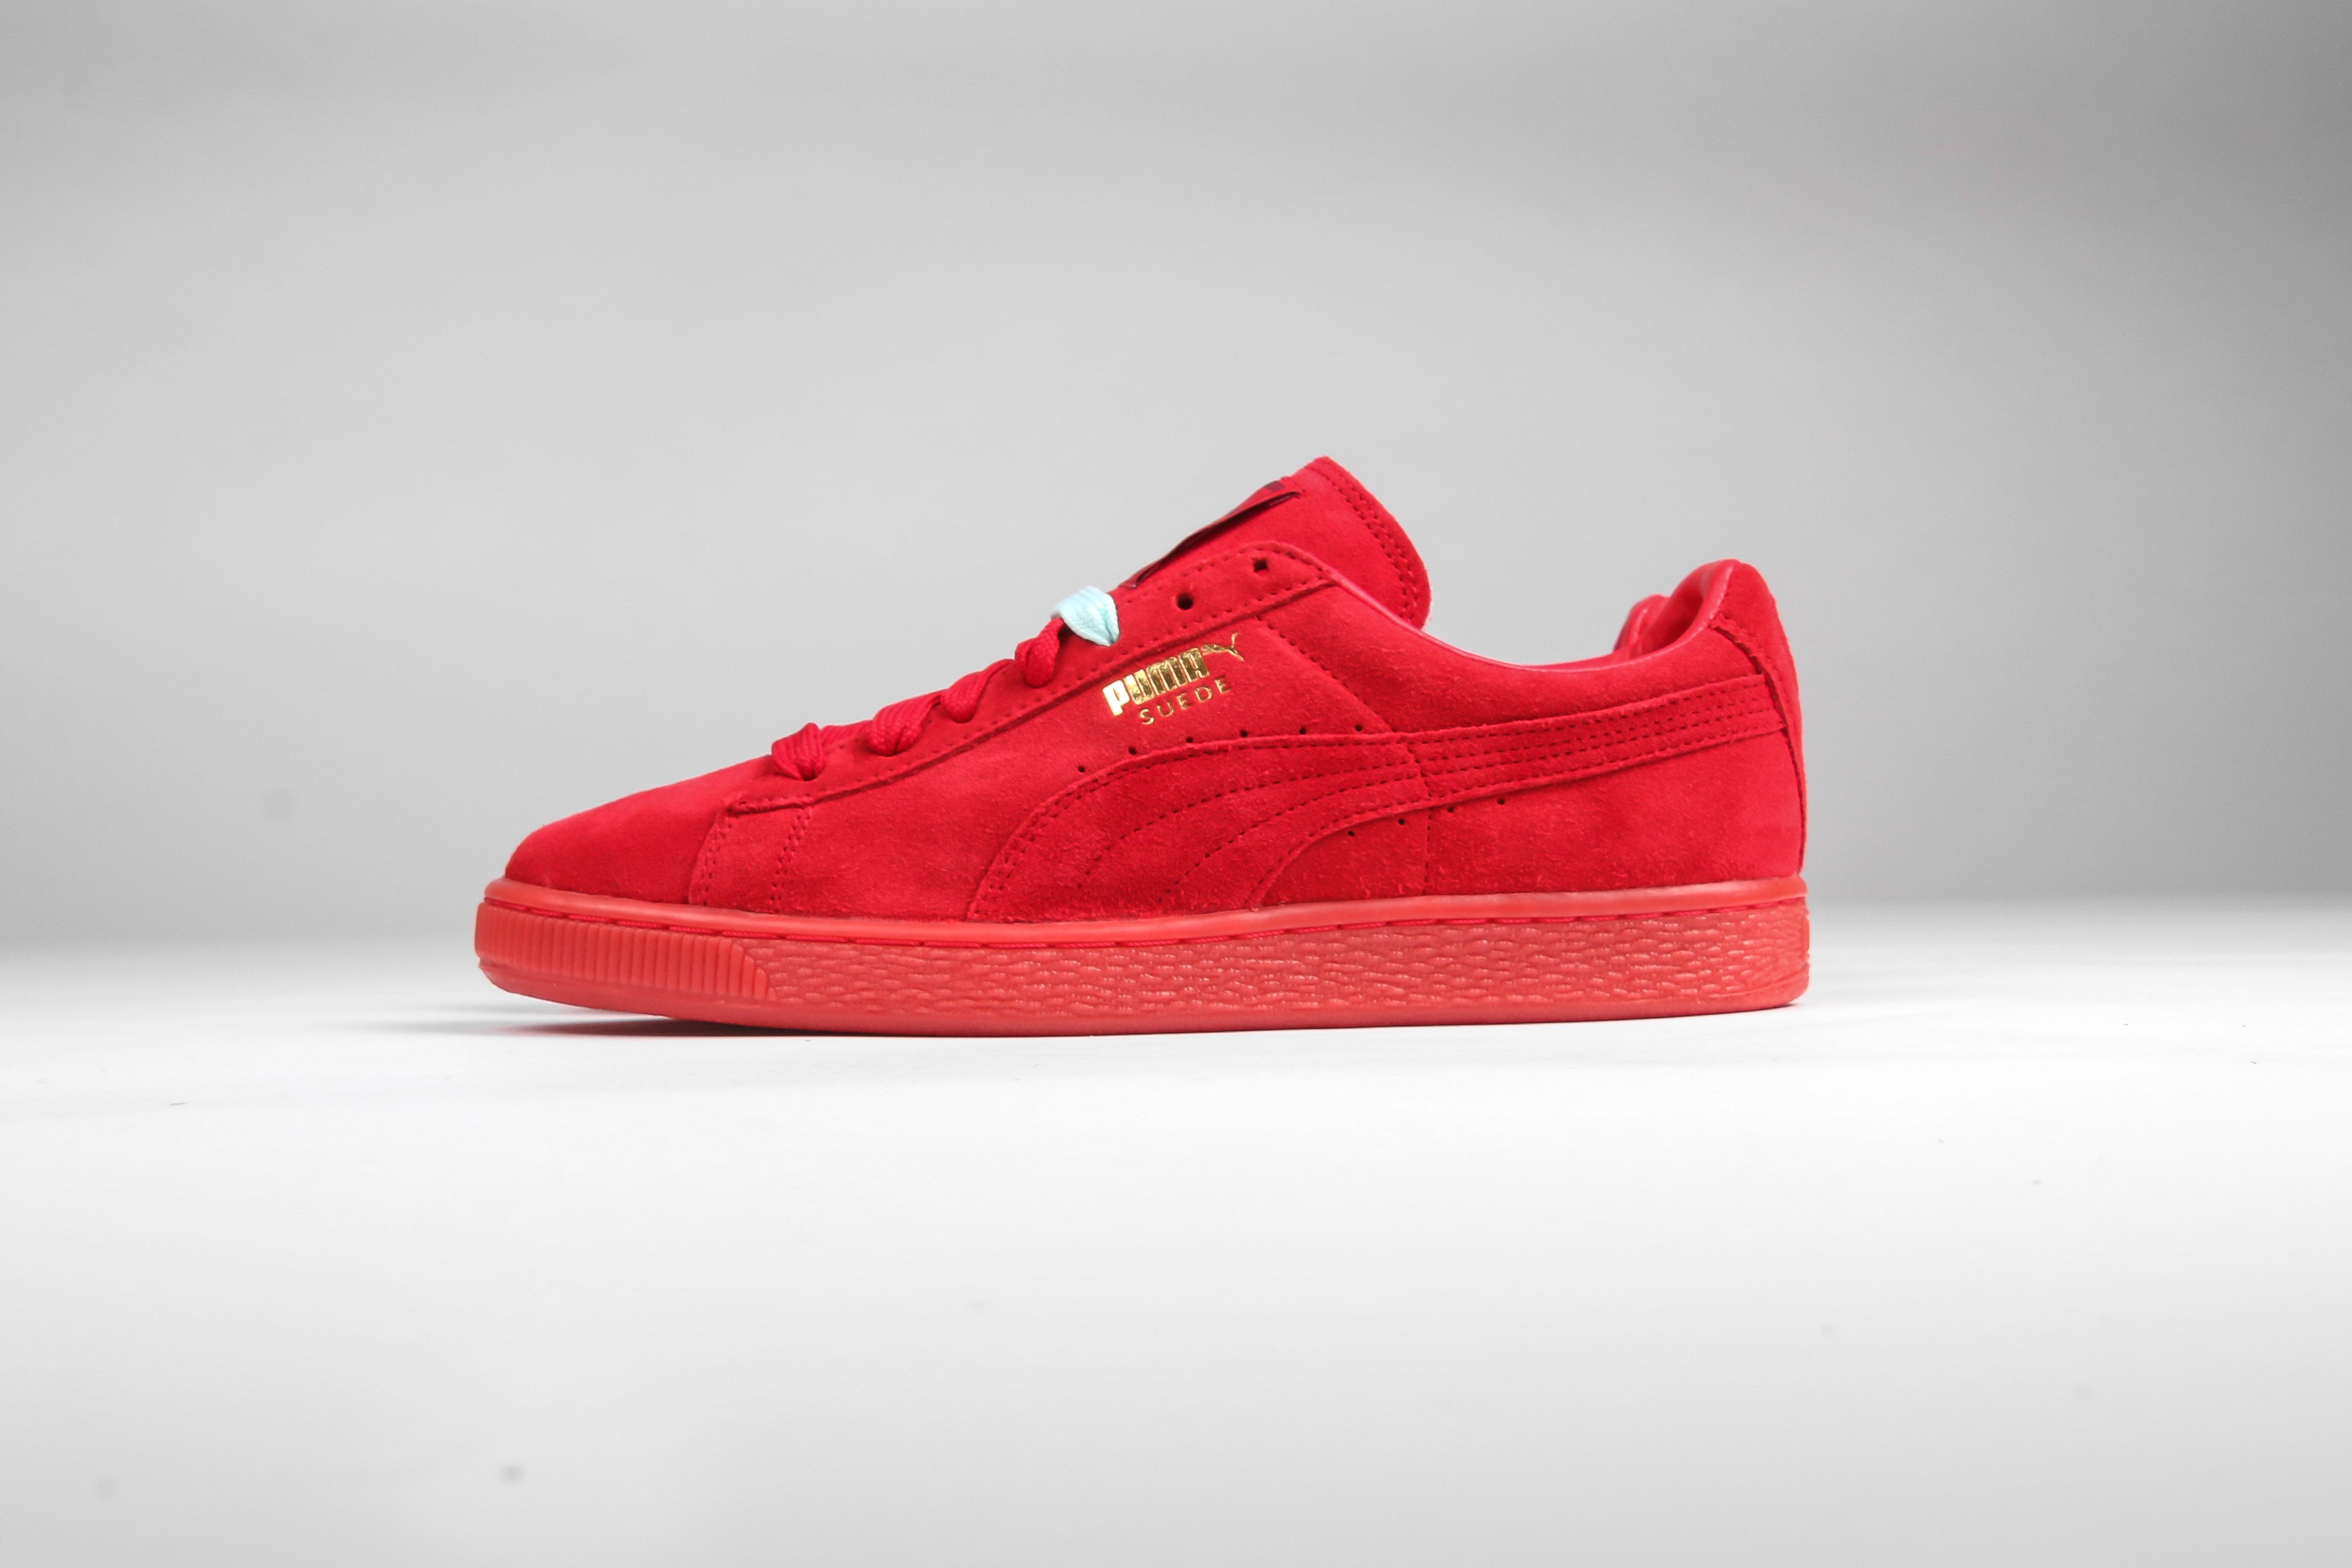 bcb1b941829 Puma Suede + Mono Iced (High Risk Red) -  65 at Rock City Kicks and online  at rockcitykicks.com. Check out our  New Arrivals  tab.